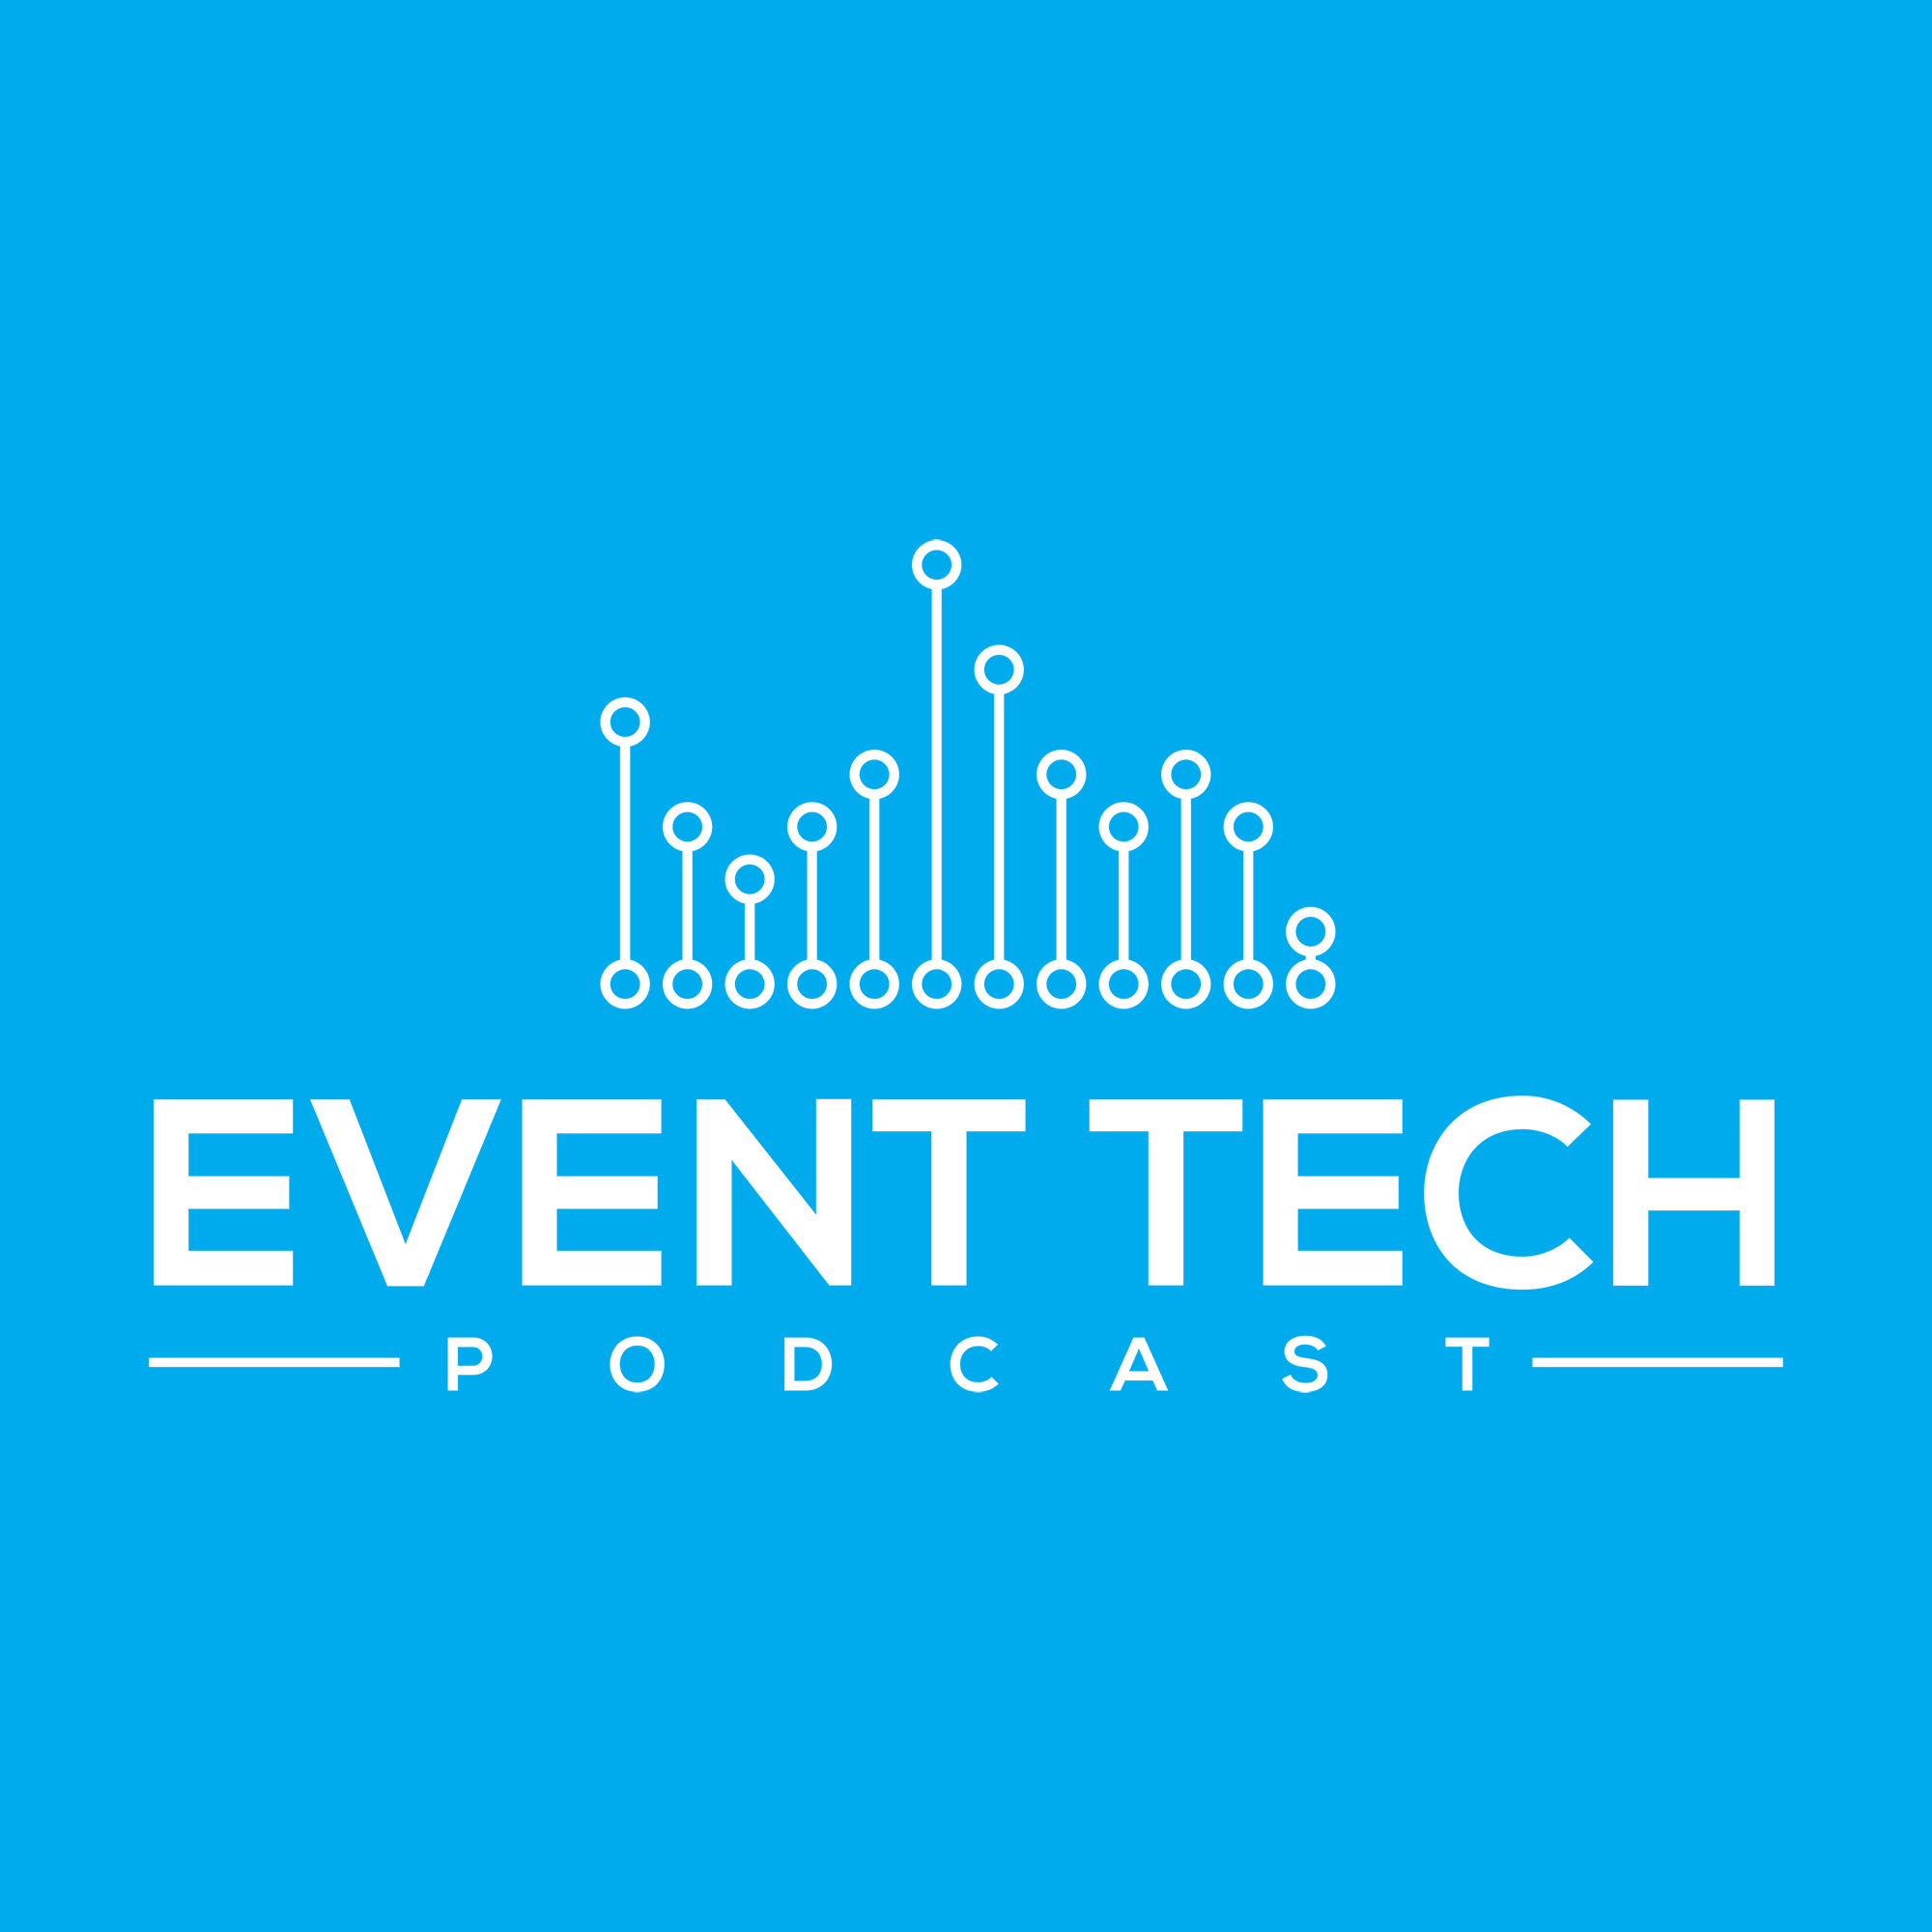 Event Tech Podcast - Weekly podcast focusing event technology trends. Originally created by John Federico and then passed to Brandt Krueger and I to take on the legacy.